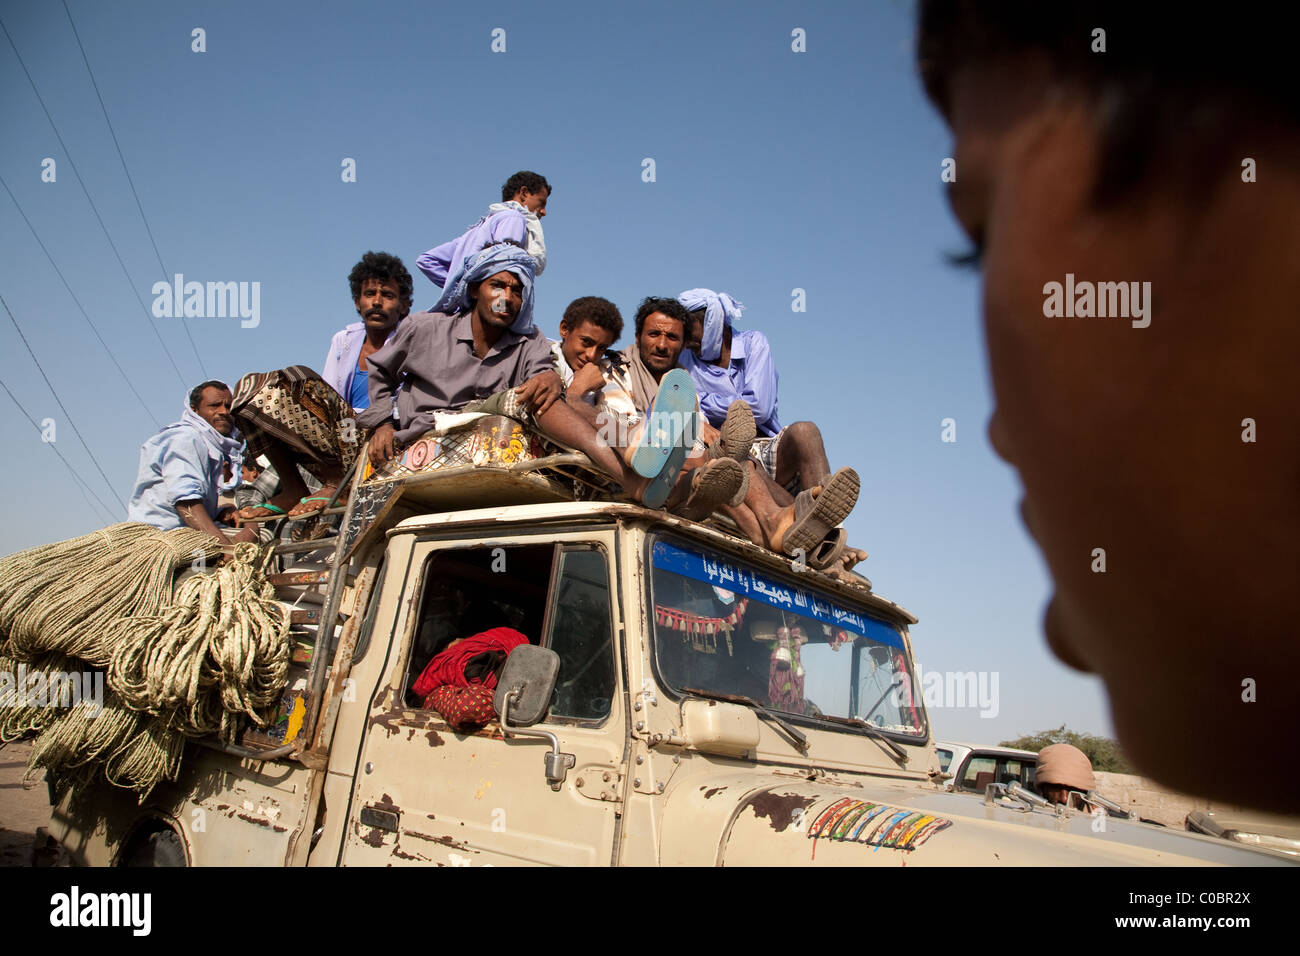 People arrive on a roof of a small truck at the Friday market in Beit al-Faqih, Yemen - Stock Image